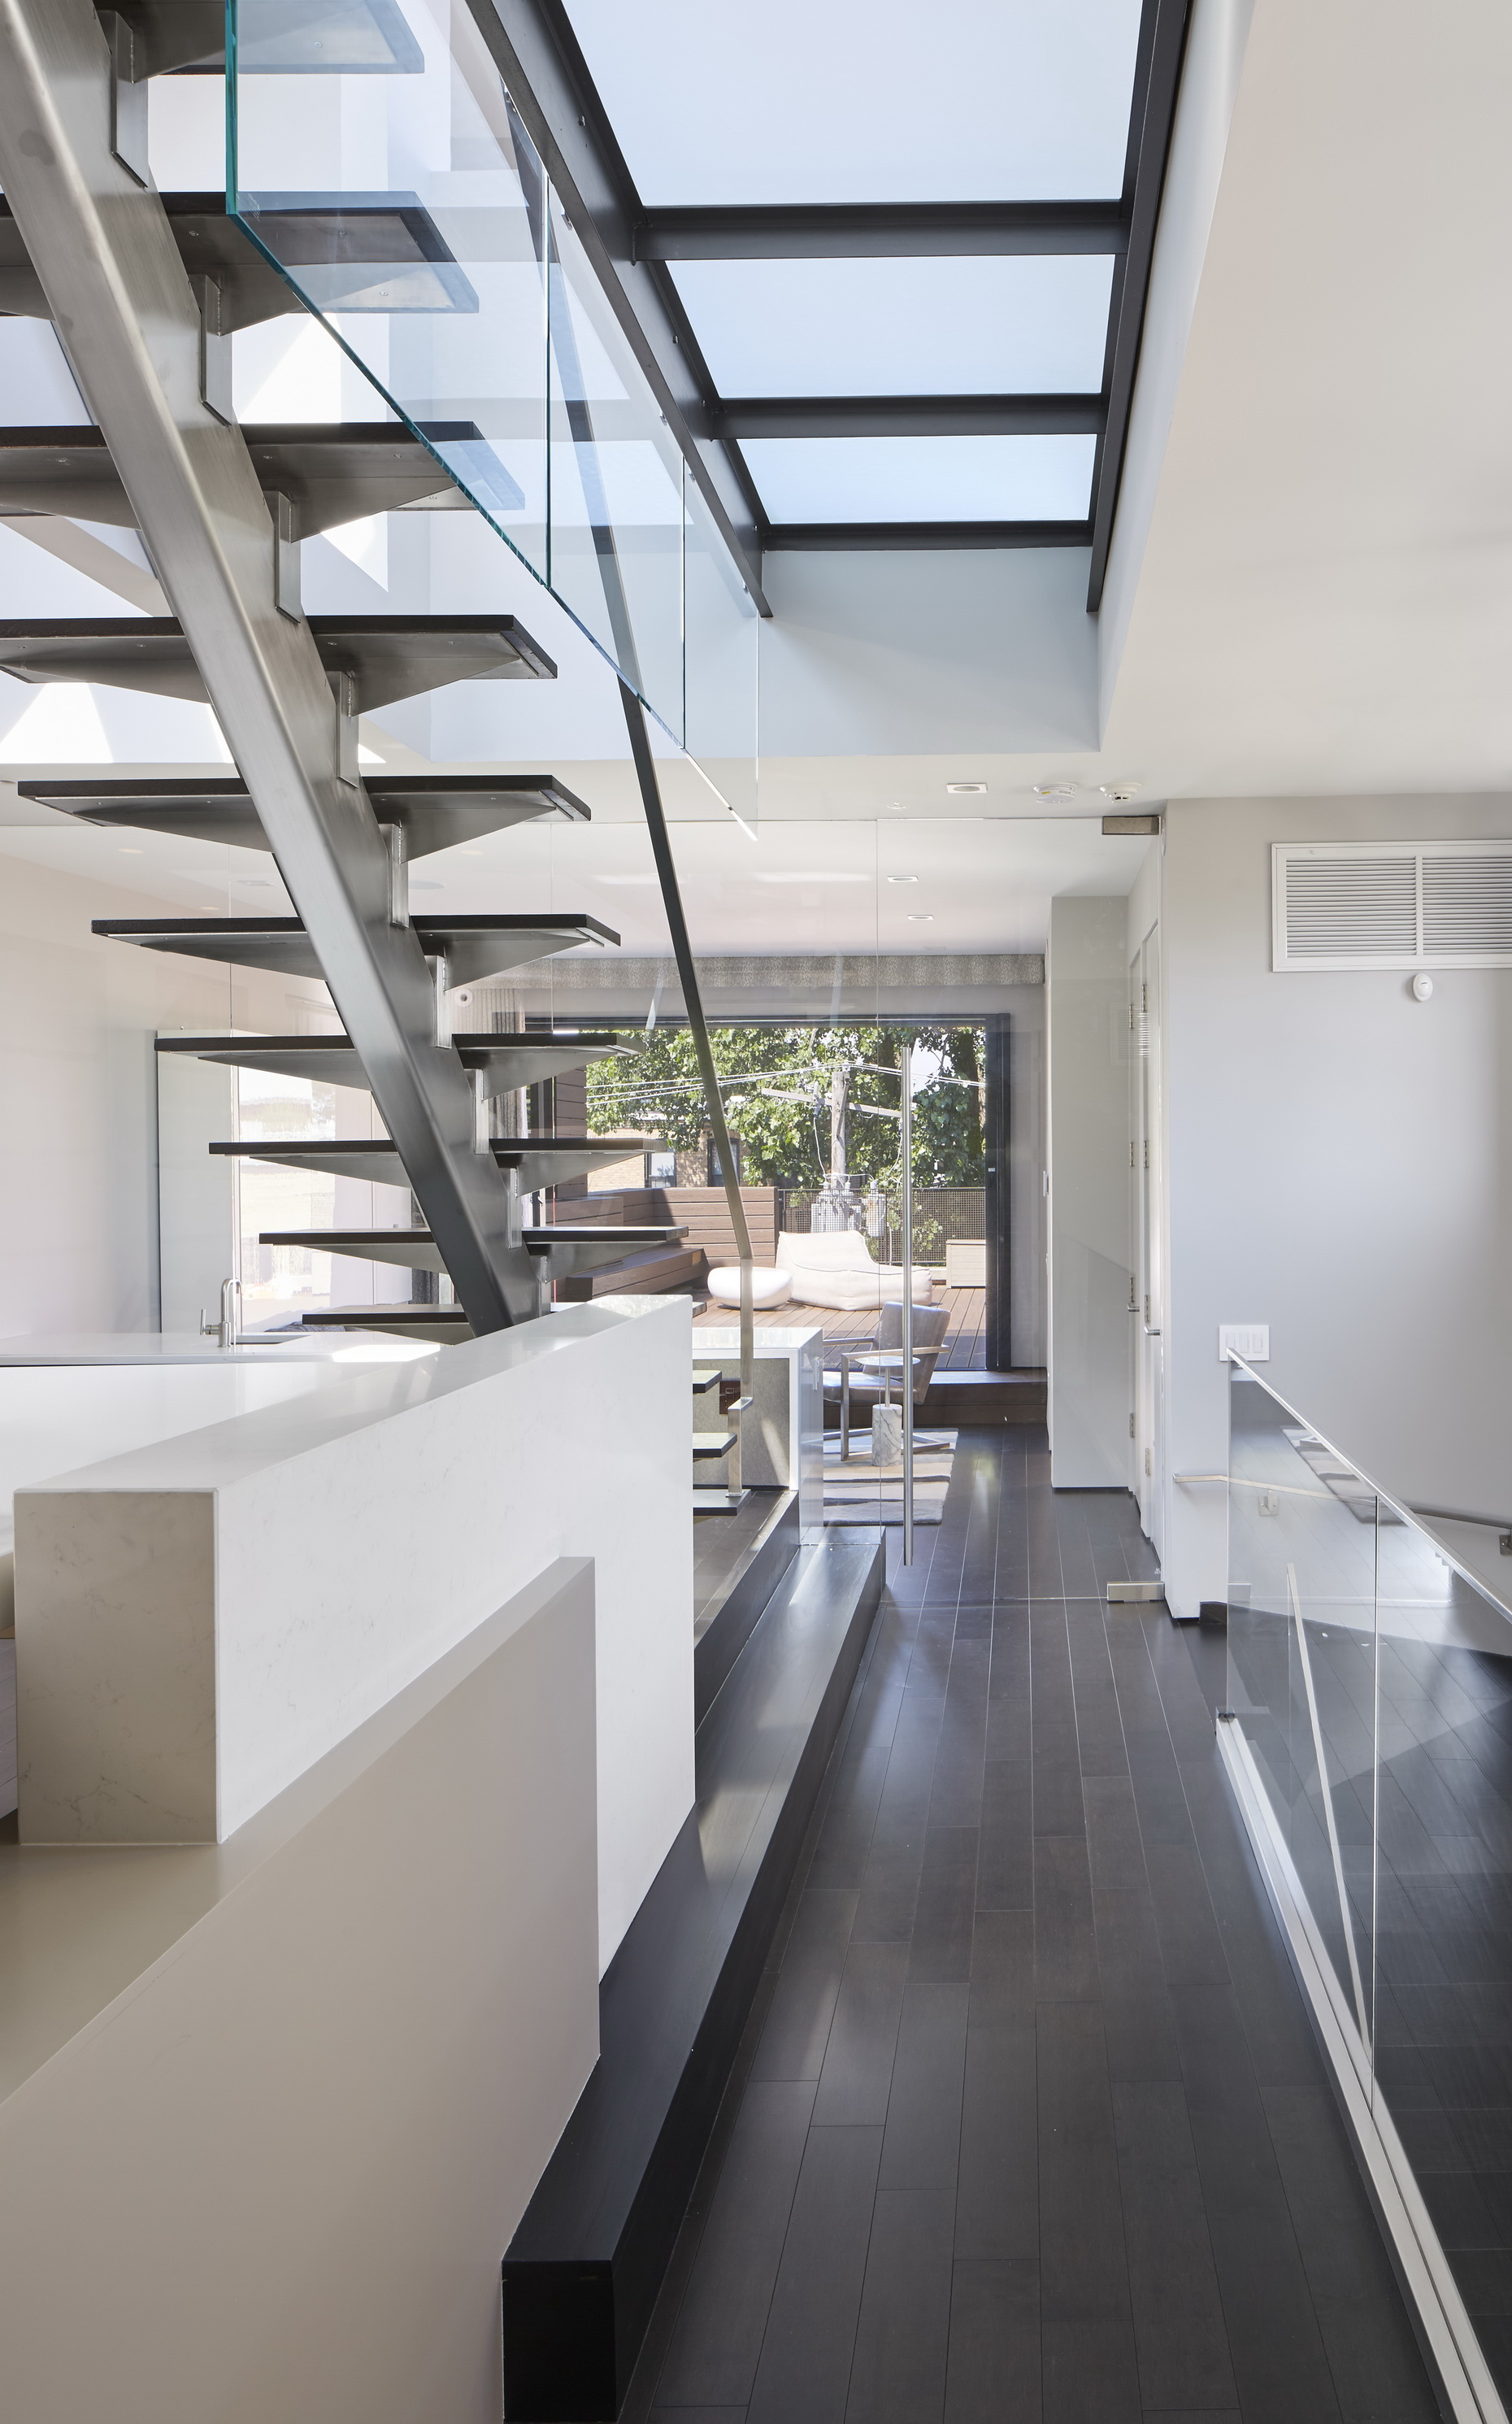 2rz find an architect american institute of architects for Find architecture